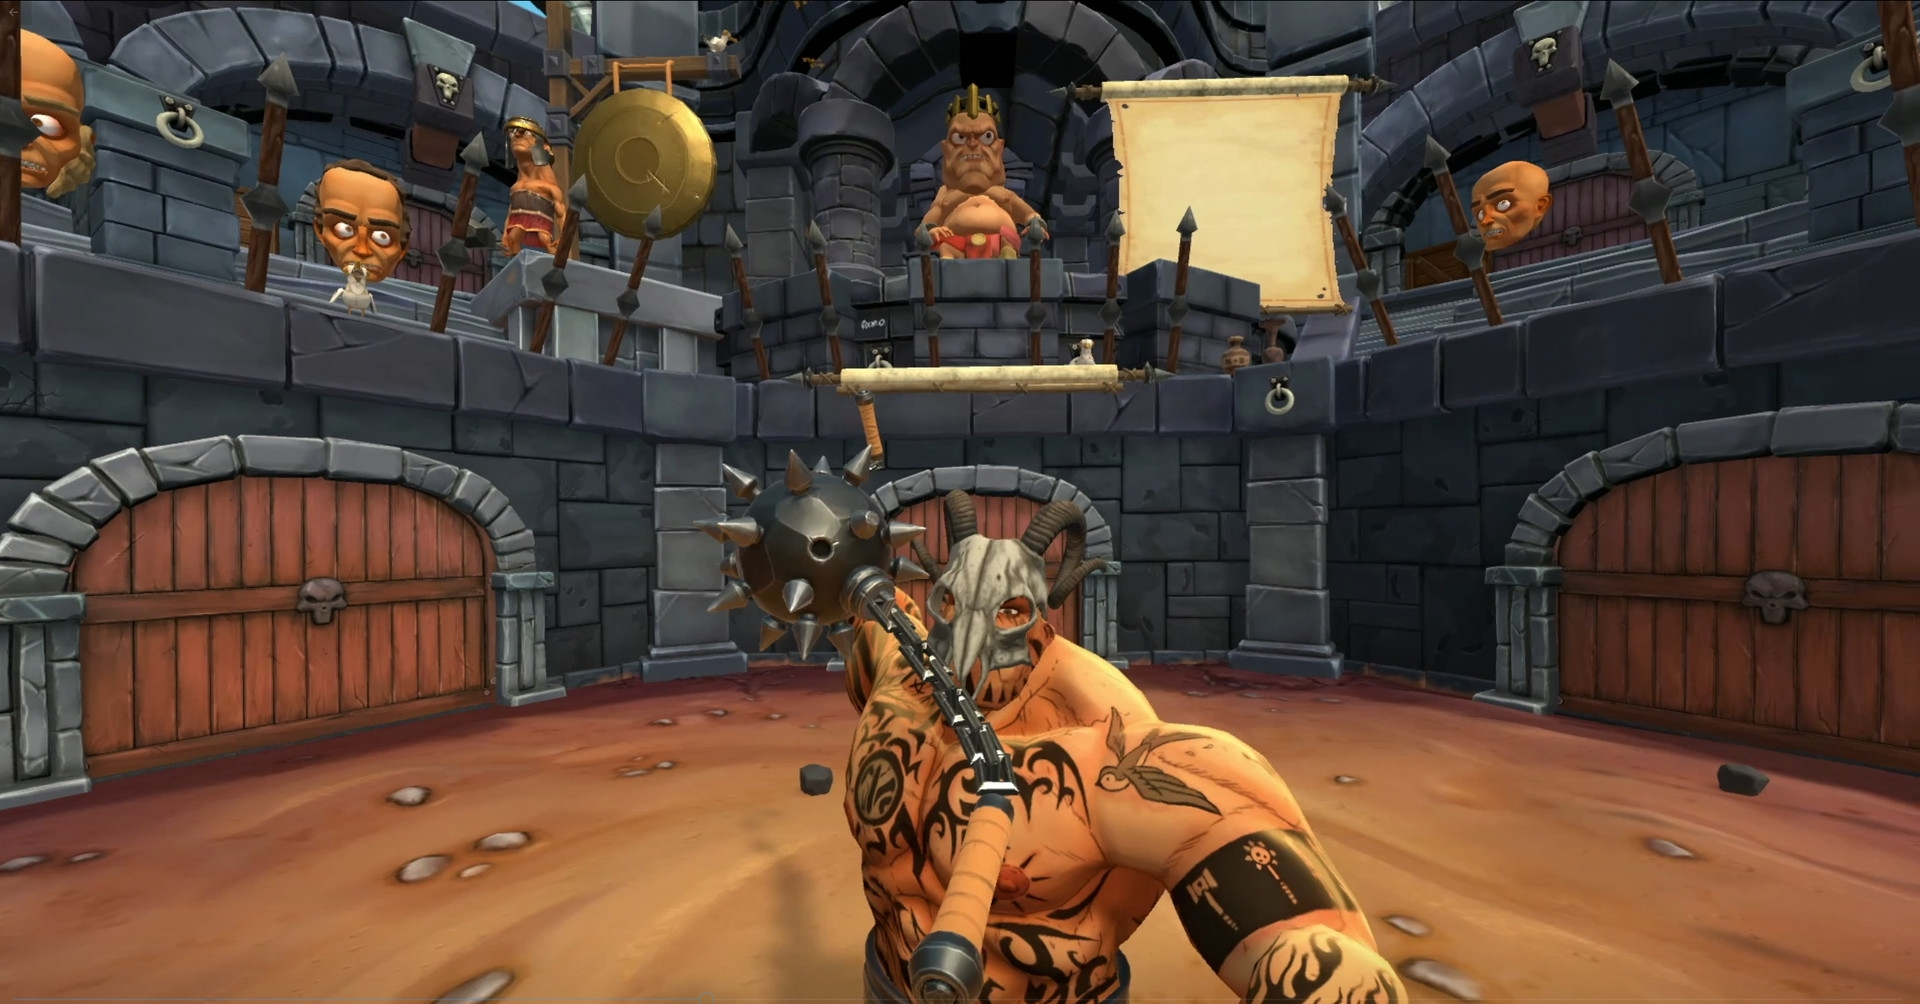 Free Lives' Gladiator VR Sim Gorn Now Available On PlayStation VR